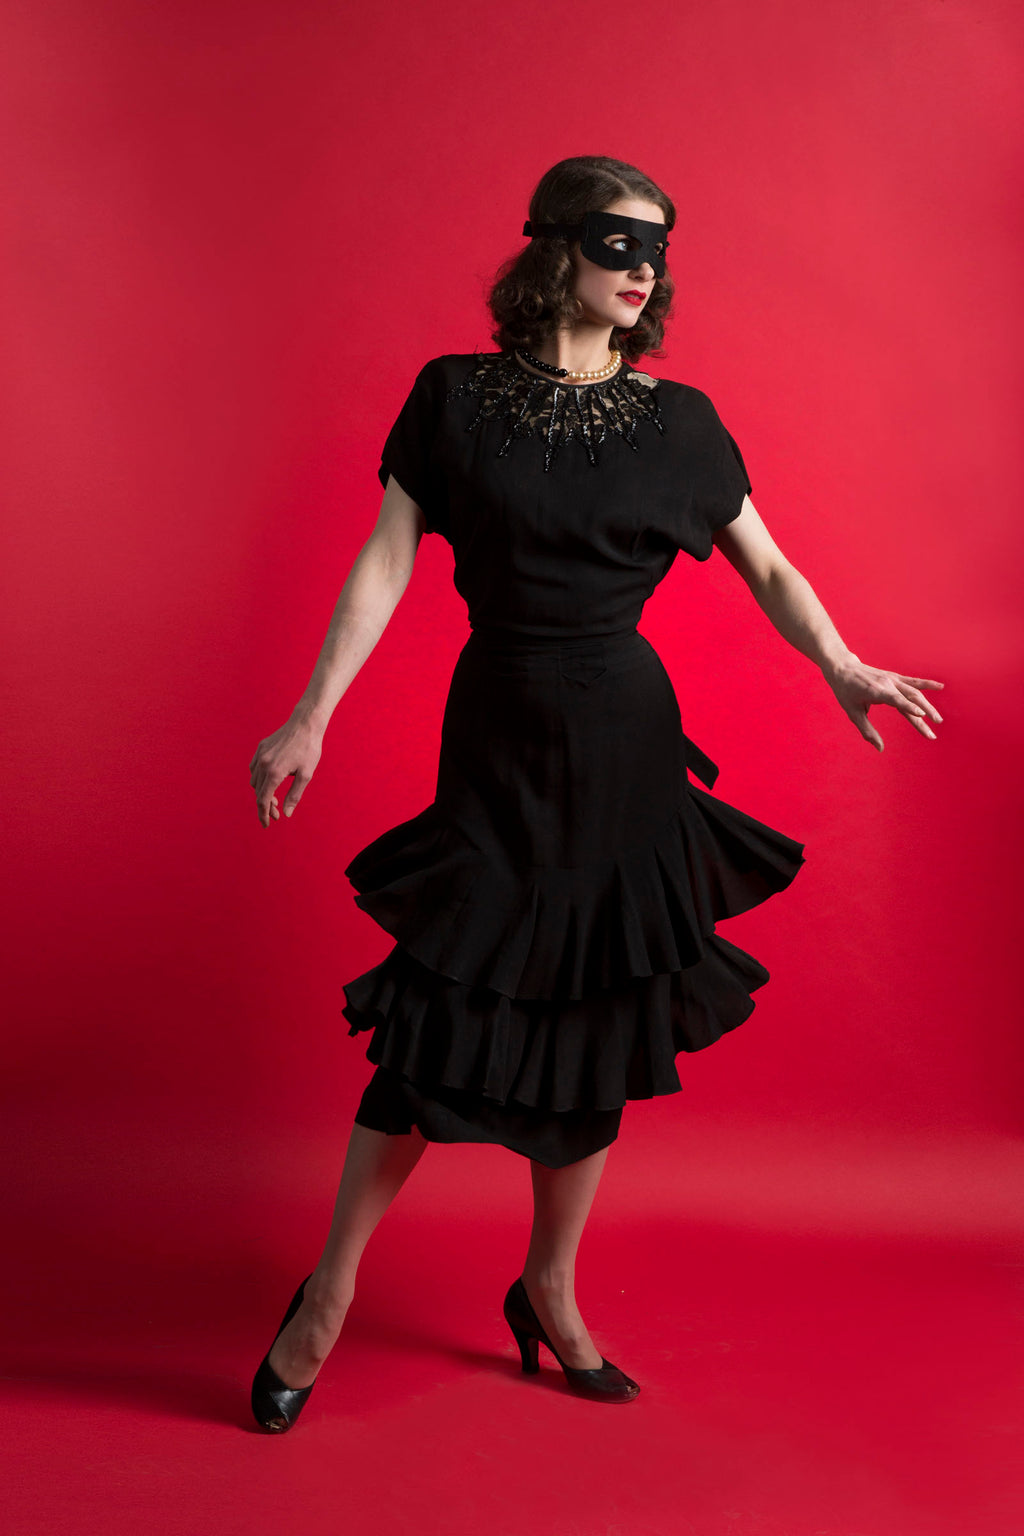 Bombshell 1940s Rayon Crepe Dress with Ruffled Bustle Skirt and Web Like Neckline